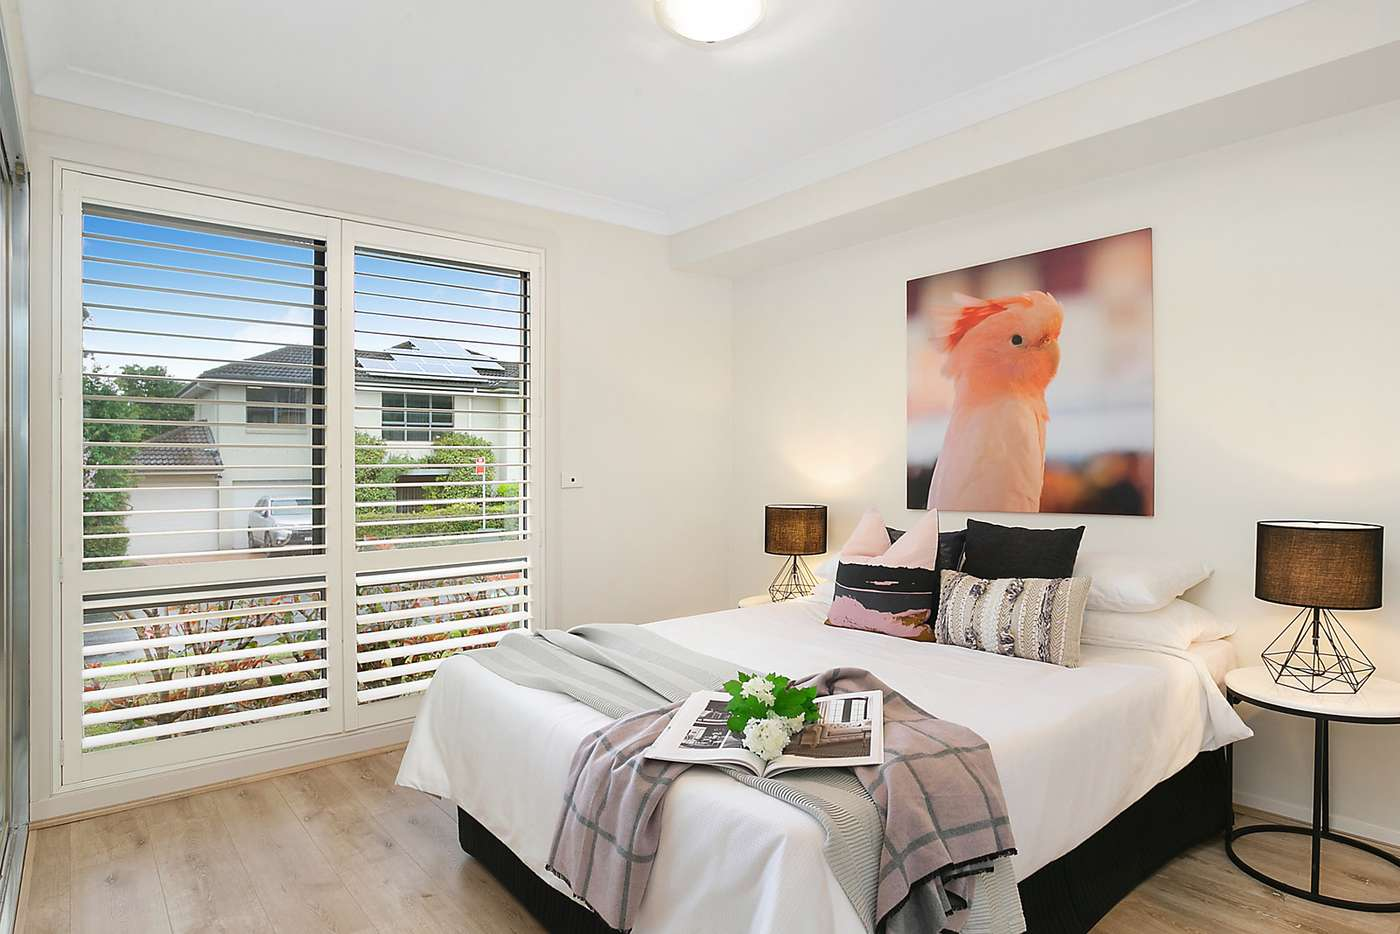 Sixth view of Homely house listing, 3 Croyde Street, Stanhope Gardens NSW 2768